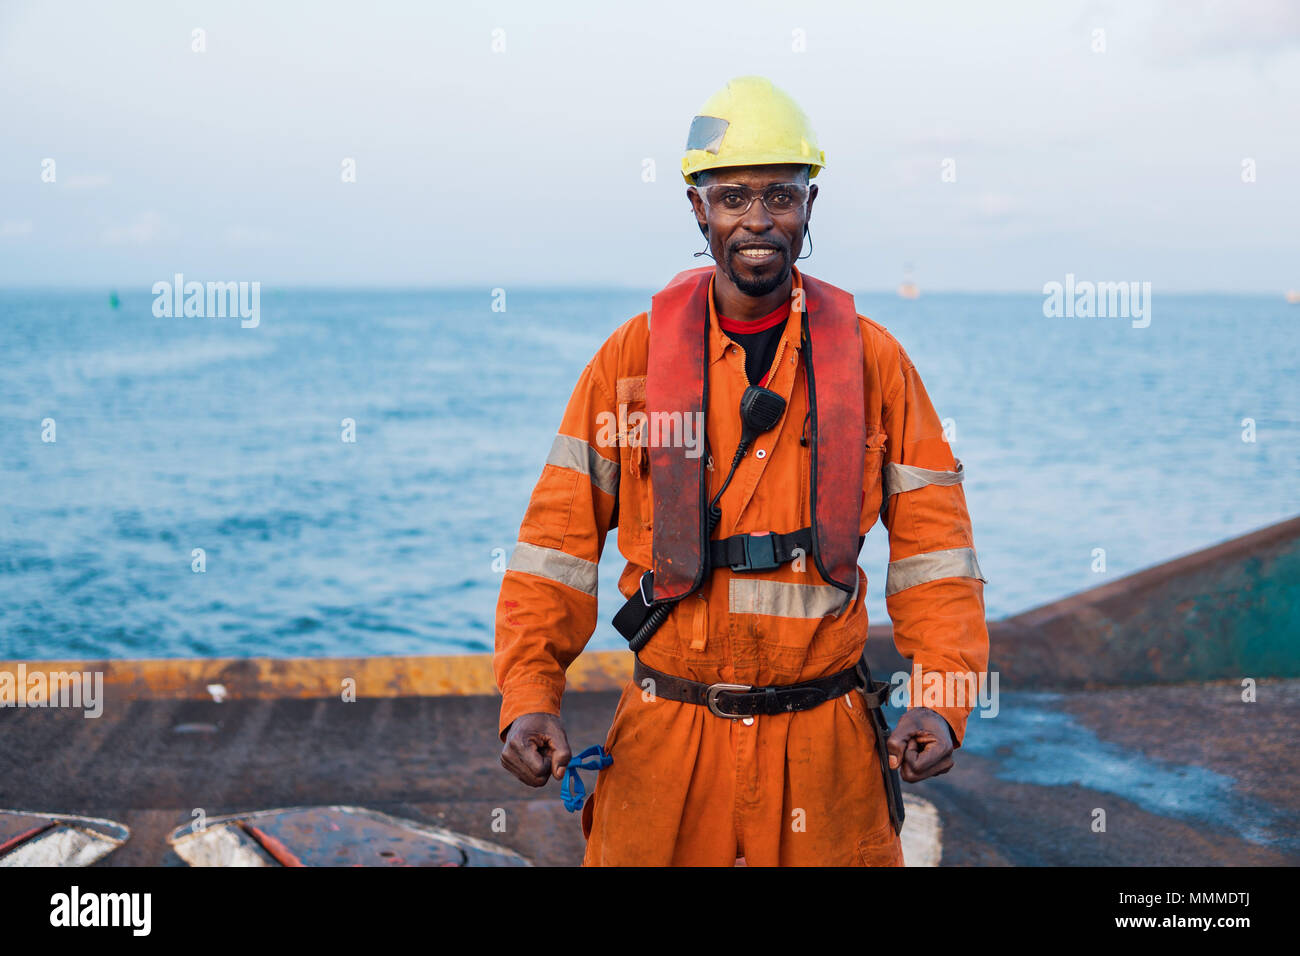 Seaman AB or Bosun on deck of offshore vessel or ship